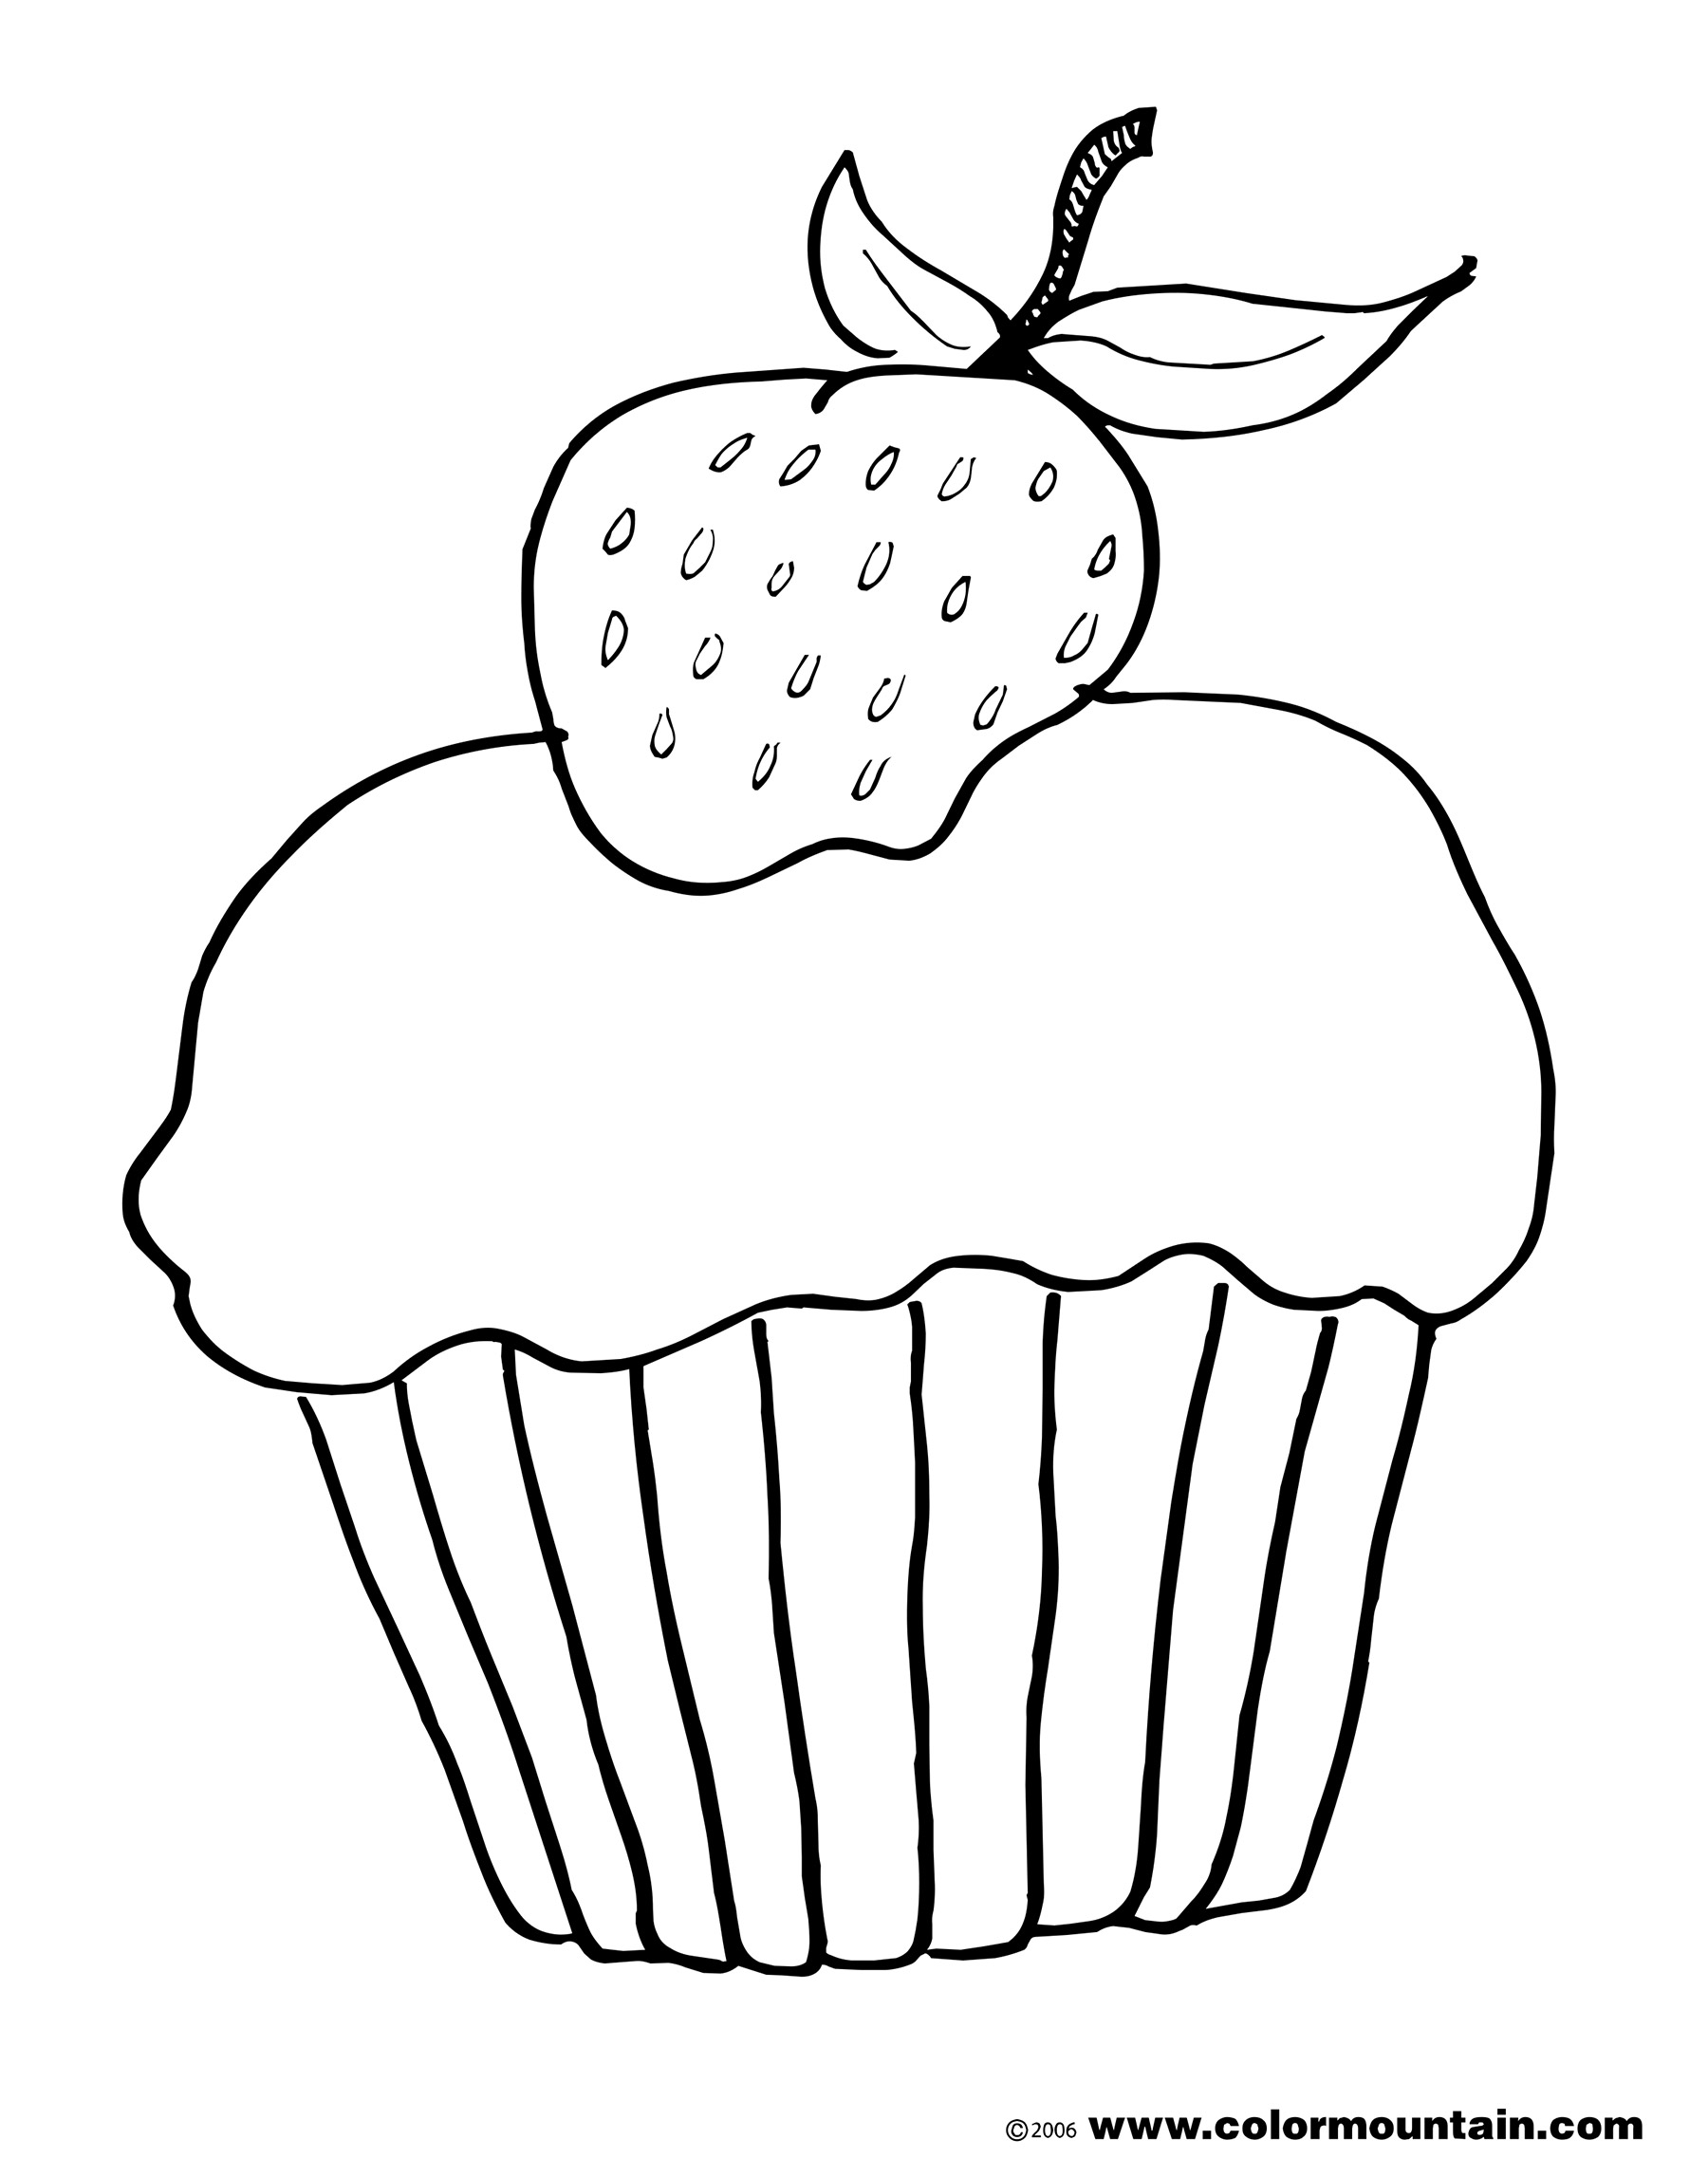 strawberry cake coloring pages strawberry cake coloring pages kerra pages coloring cake strawberry